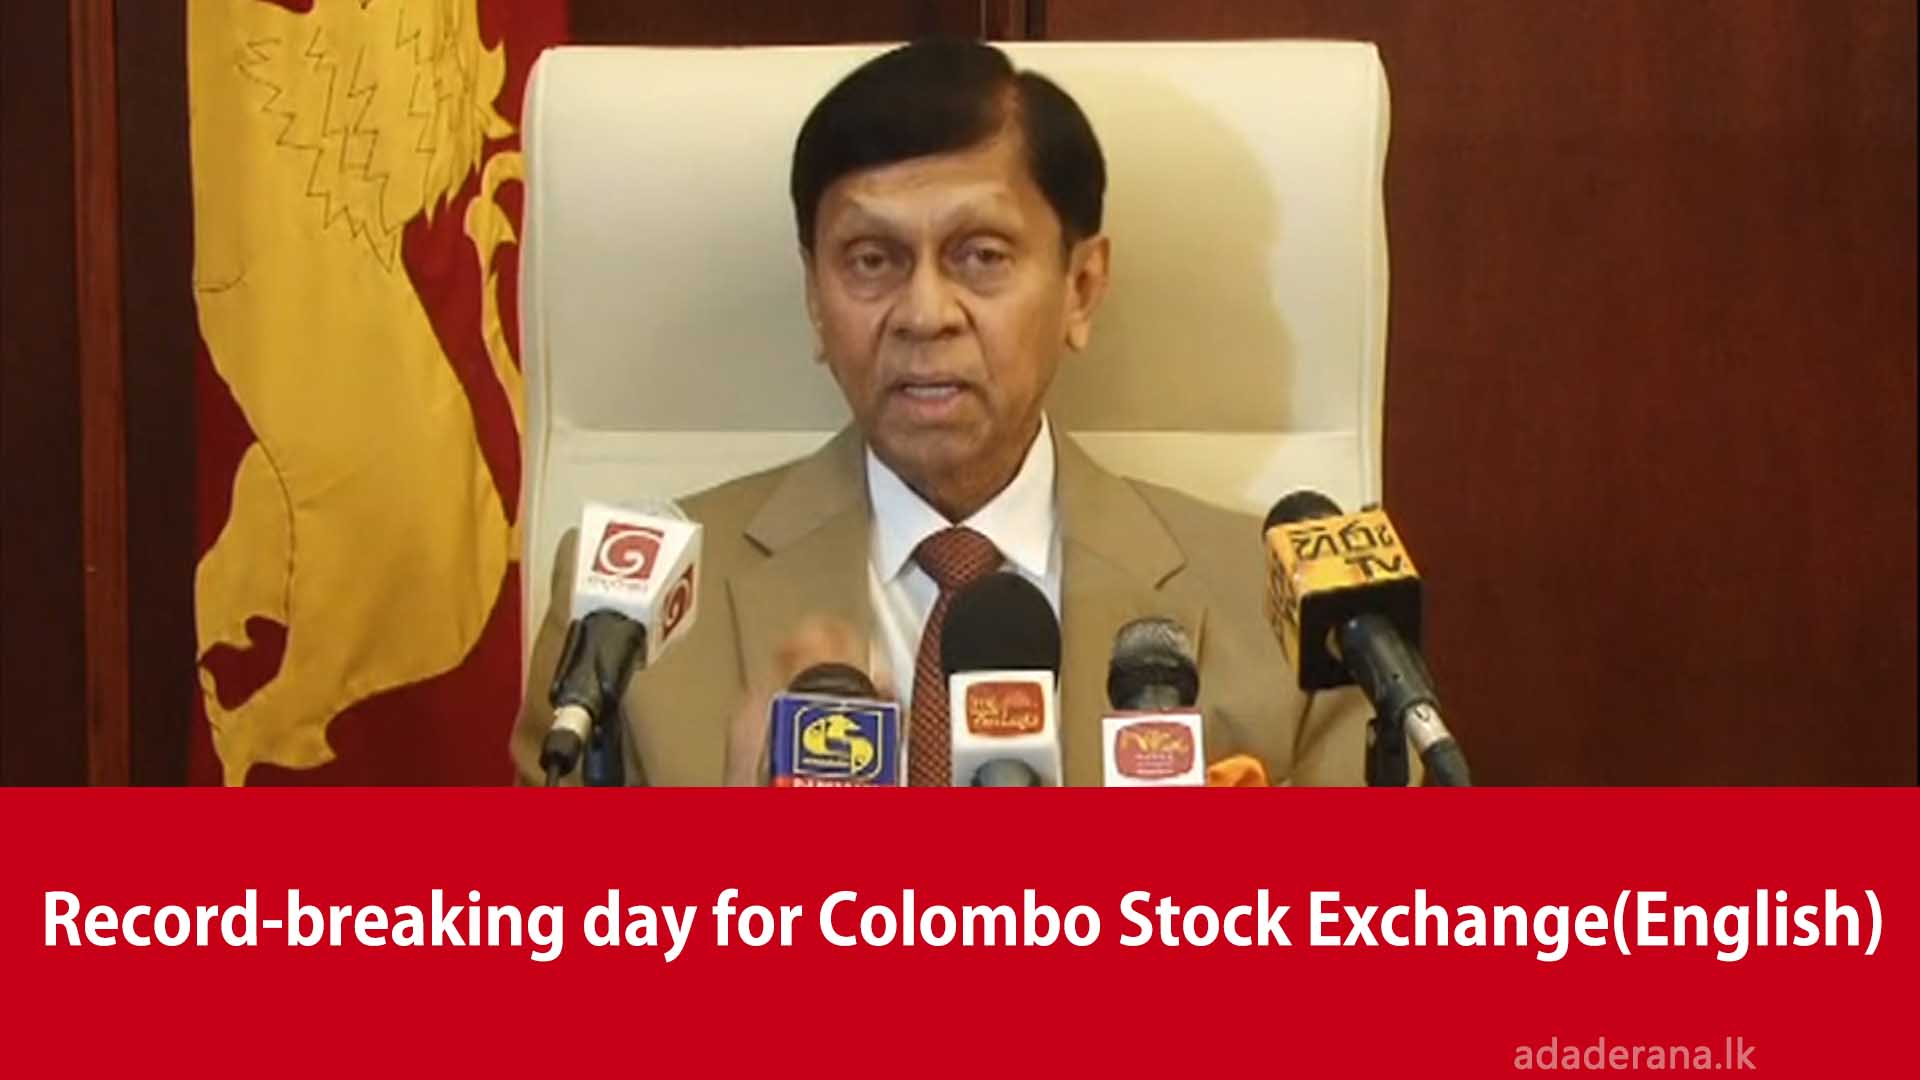 Record-breaking day for Colombo Stock Exchange (English)